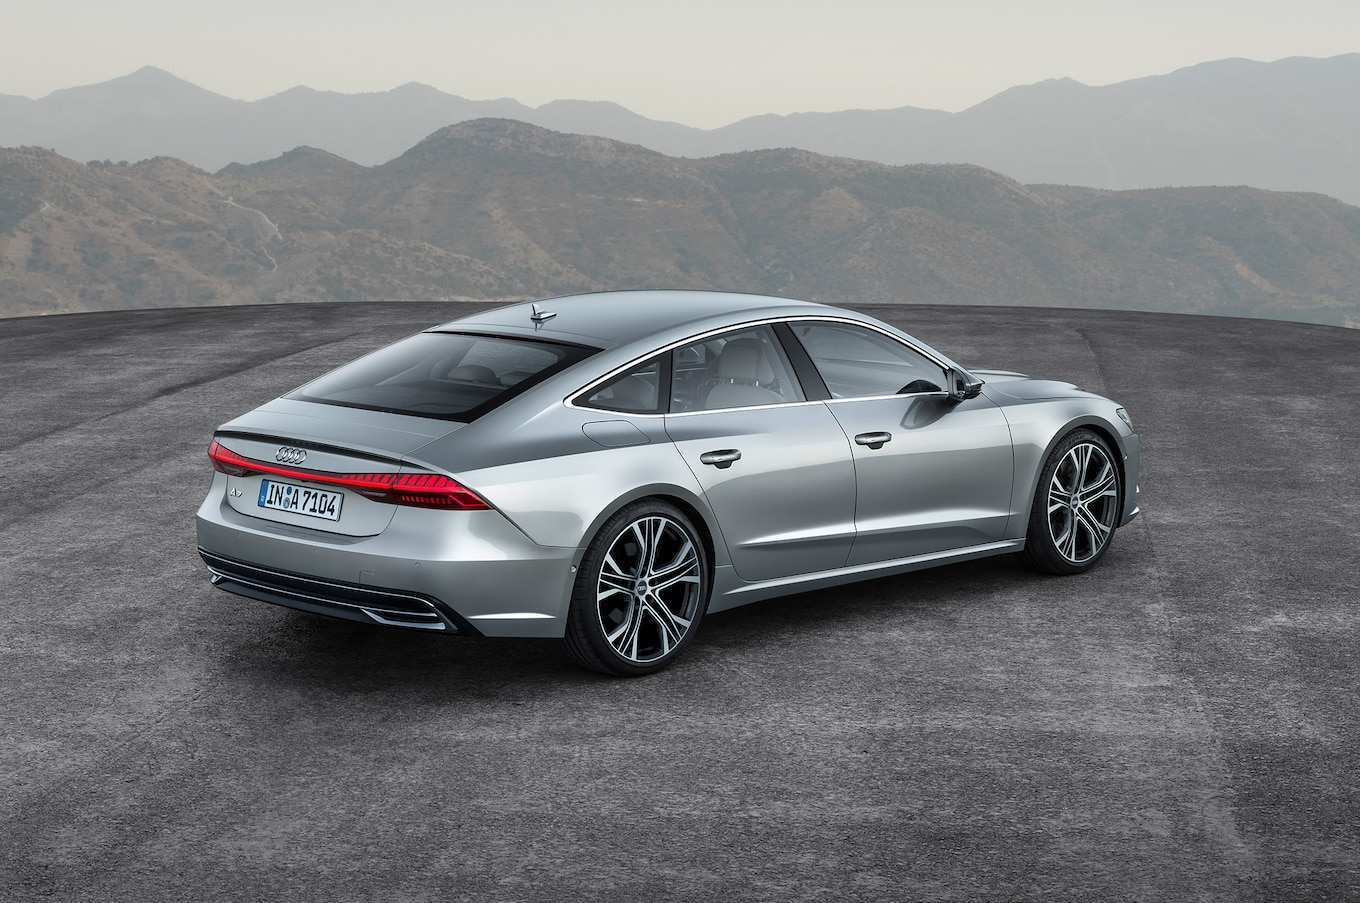 59 Great 2019 Audi A7 0 60 Price and Review by 2019 Audi A7 0 60